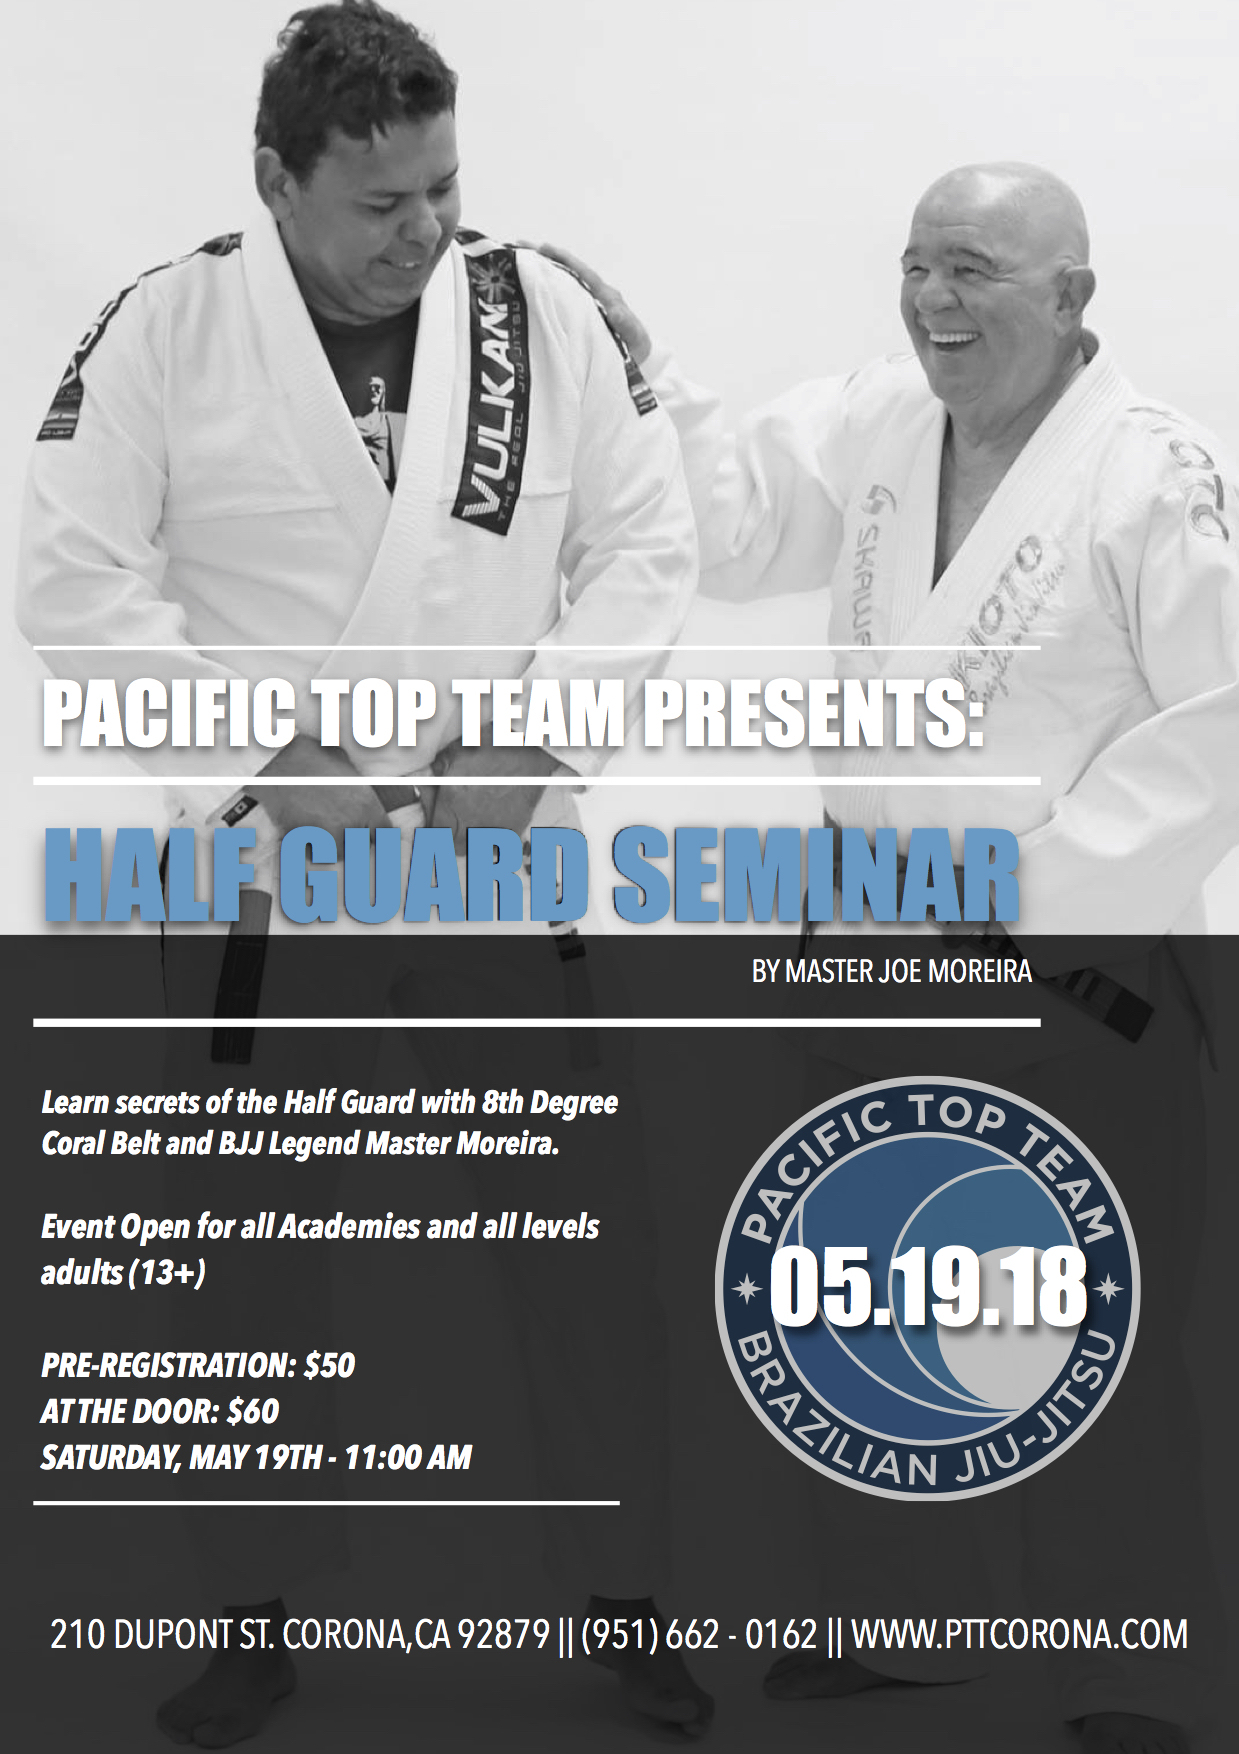 Brazilian Jiu Jitsu Half Guard Seminar with Master Joe Moreira